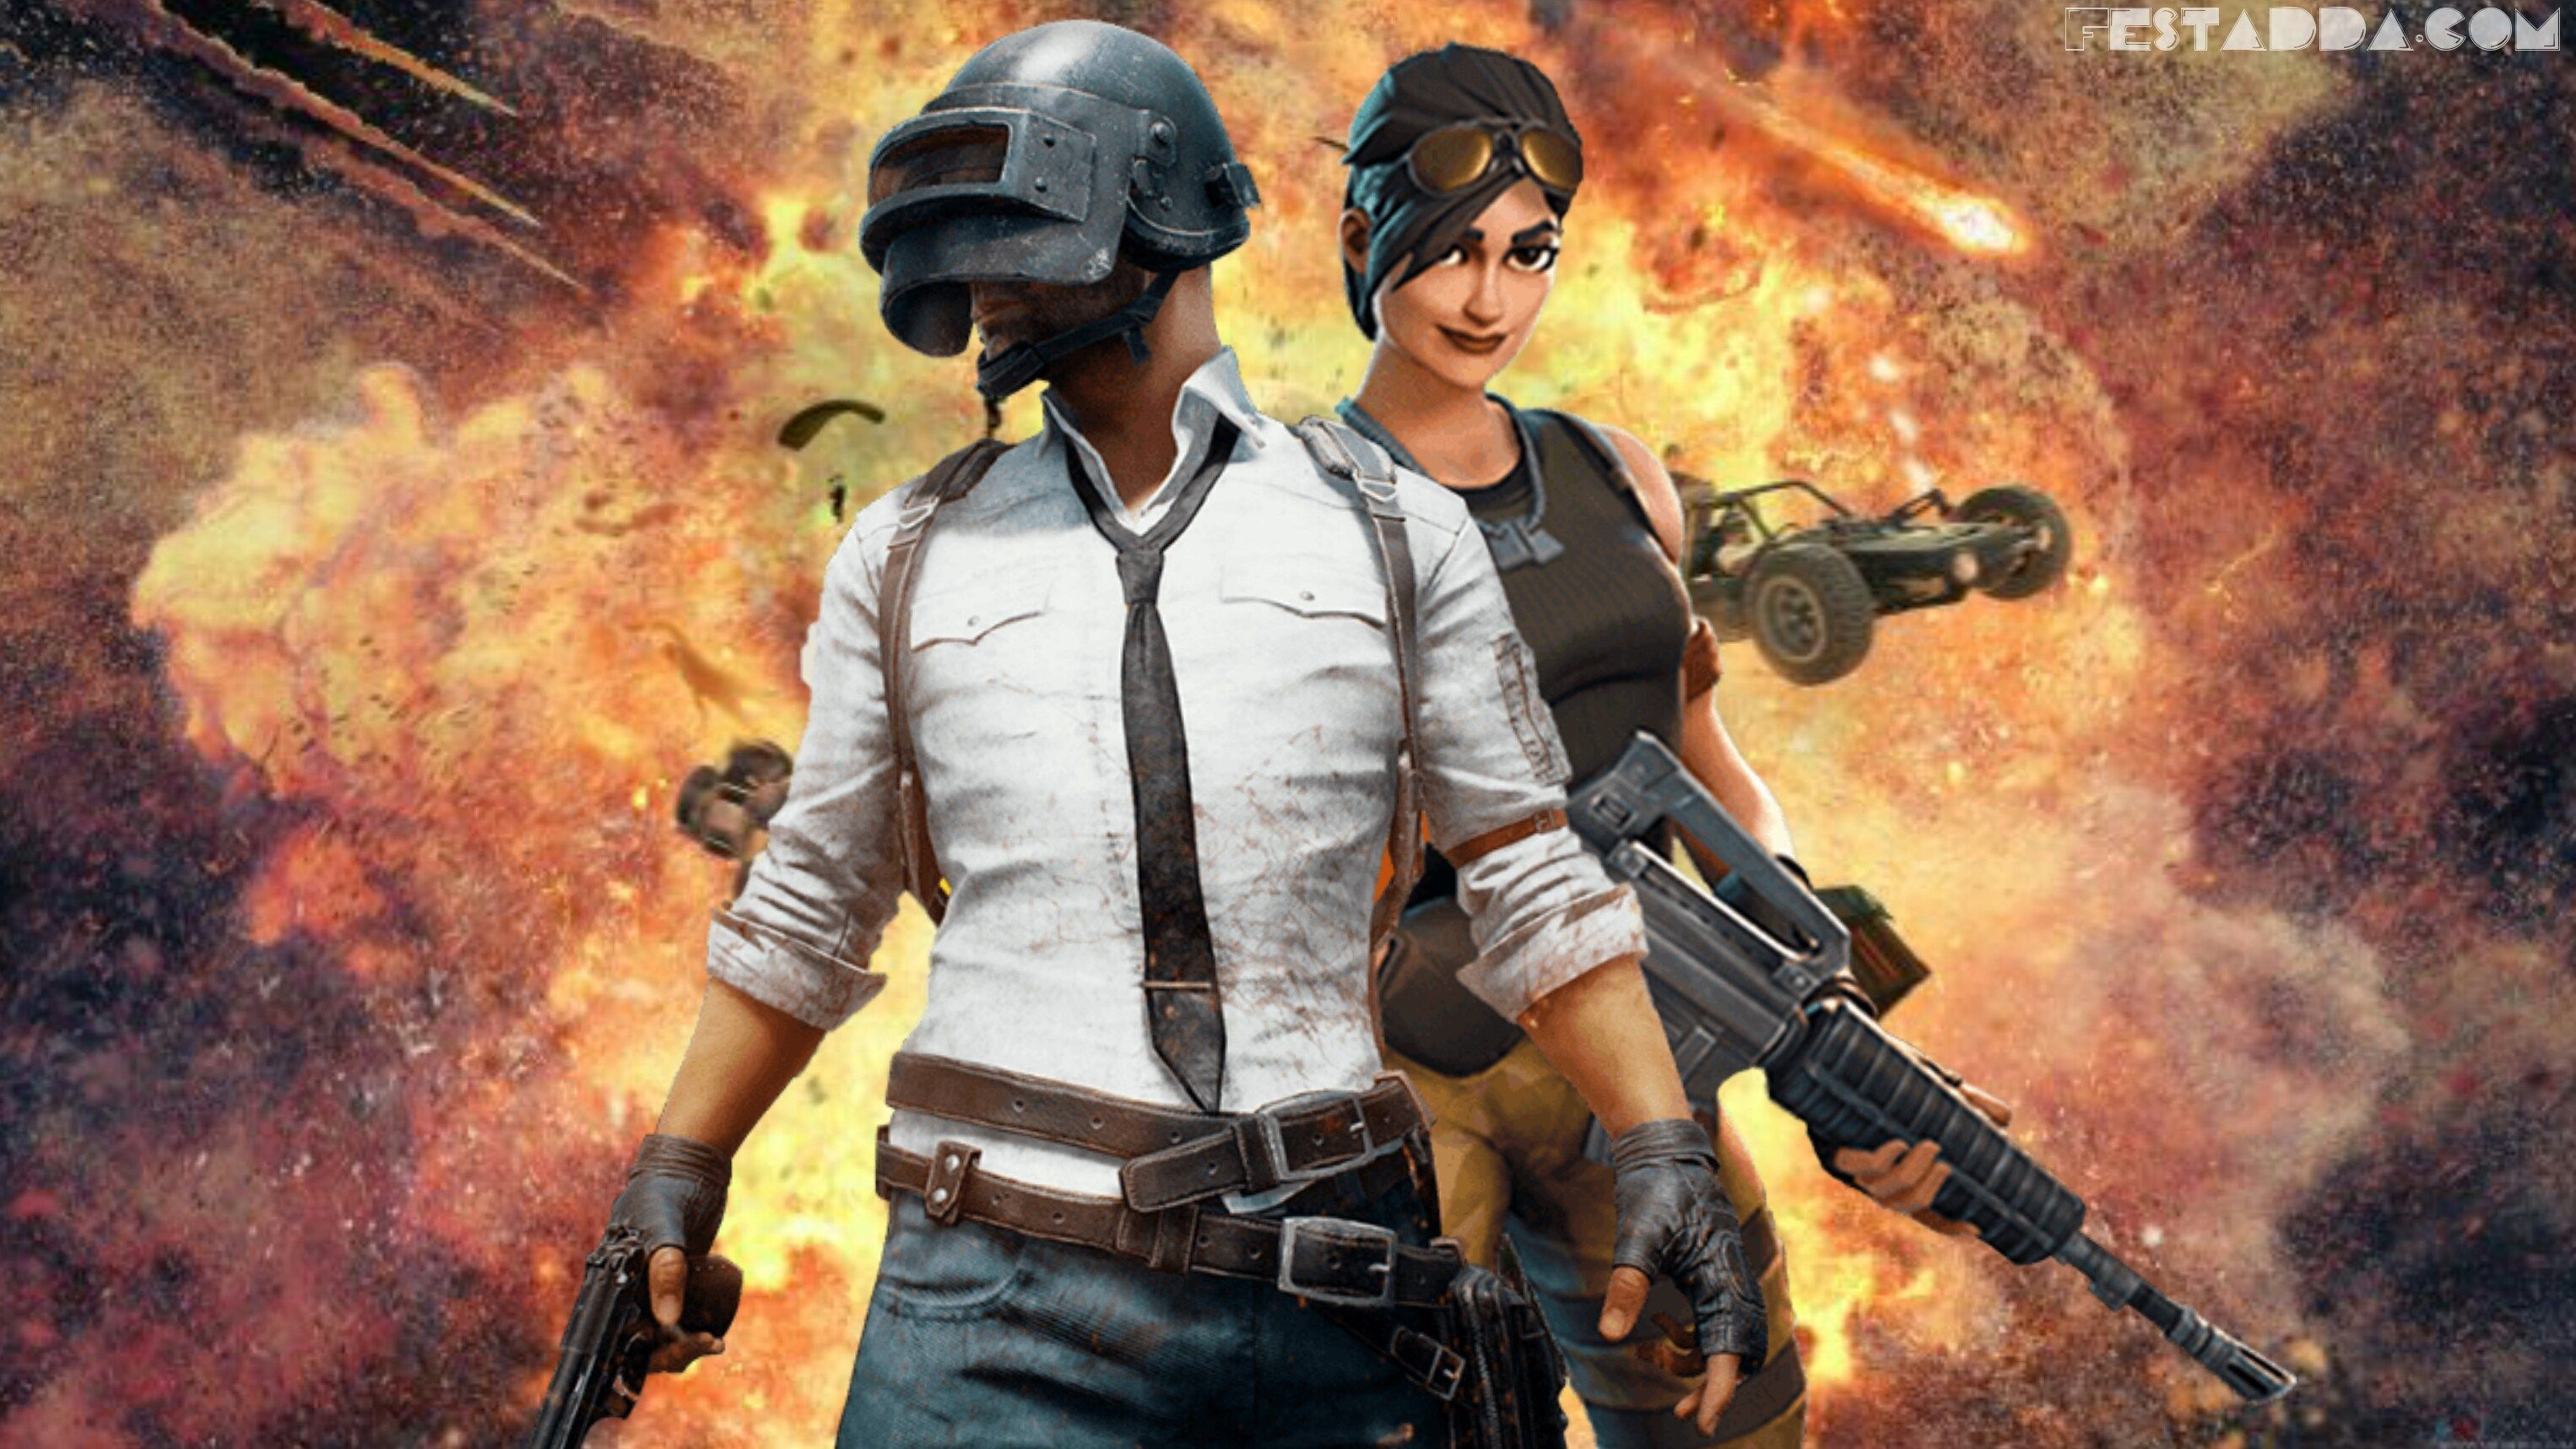 Pubg Wallpaper Iphone 6 Plus: PUBG Wallpaper 1080P